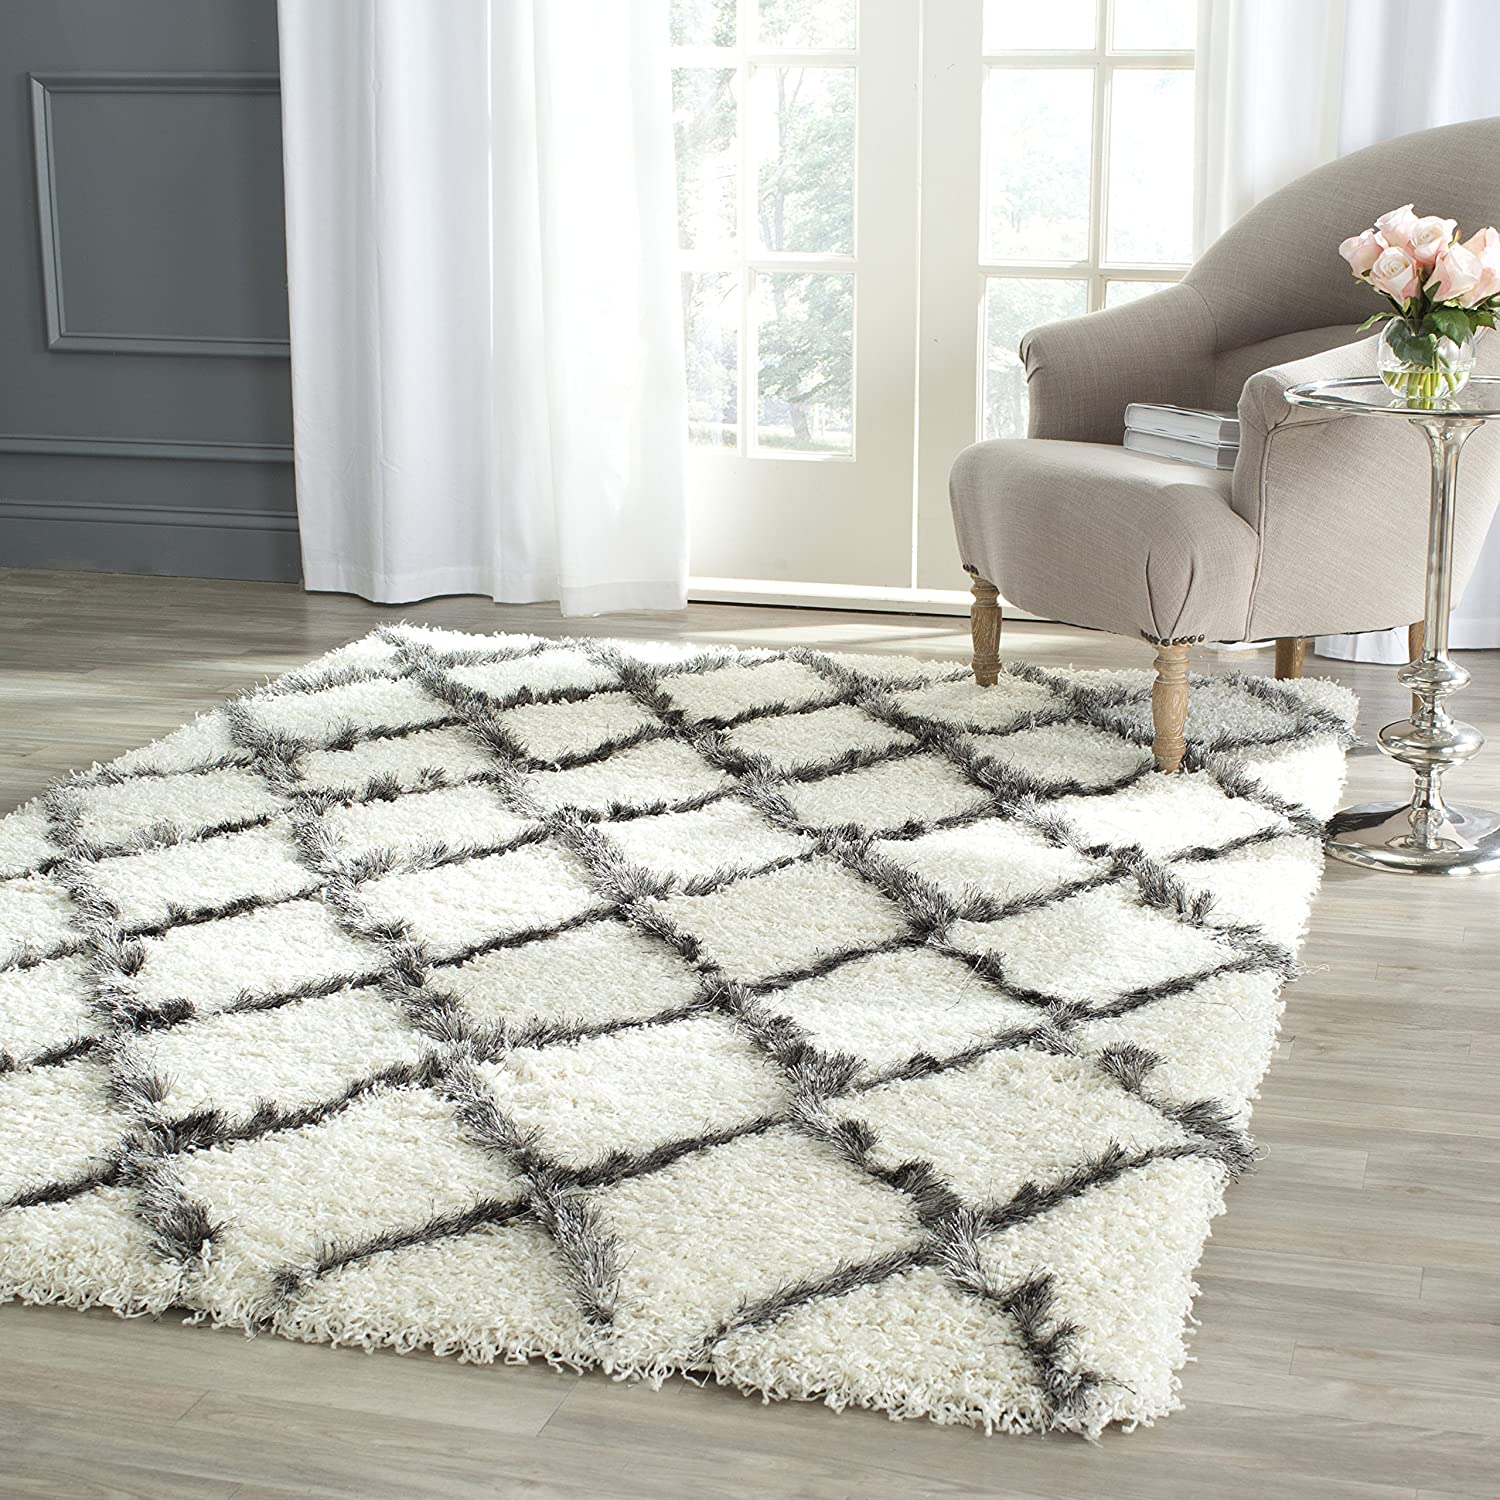 amazoncom safavieh moroccan shag collection msg343a ivory and grey area rug 8u0027 x 10u0027 kitchen u0026 dining